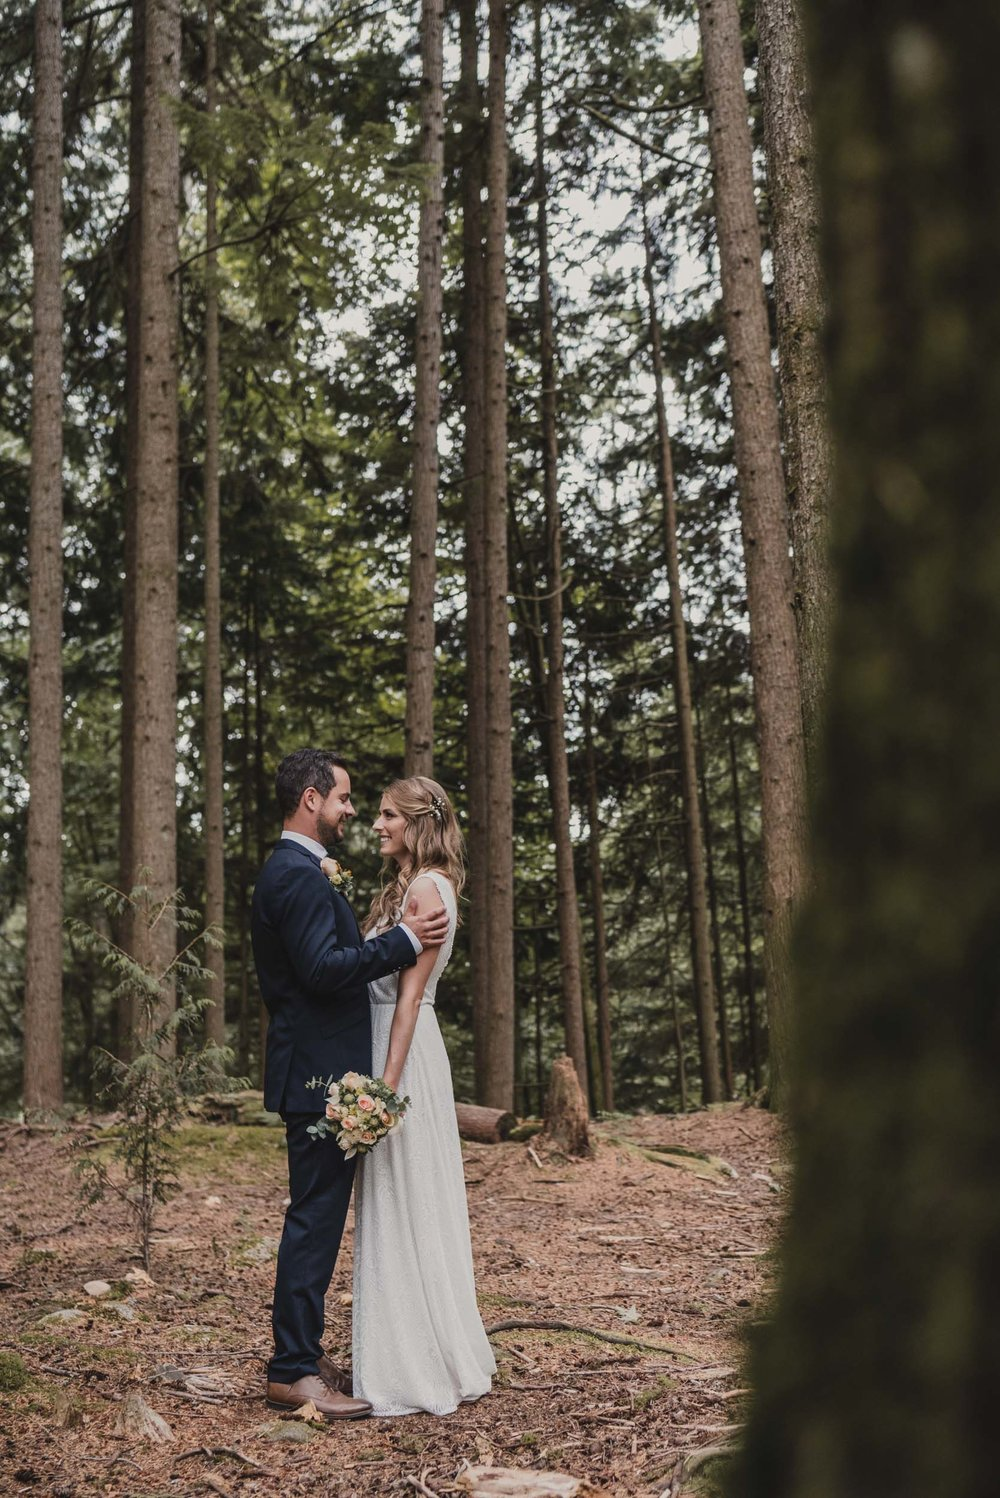 Bride and groom embrace in forest